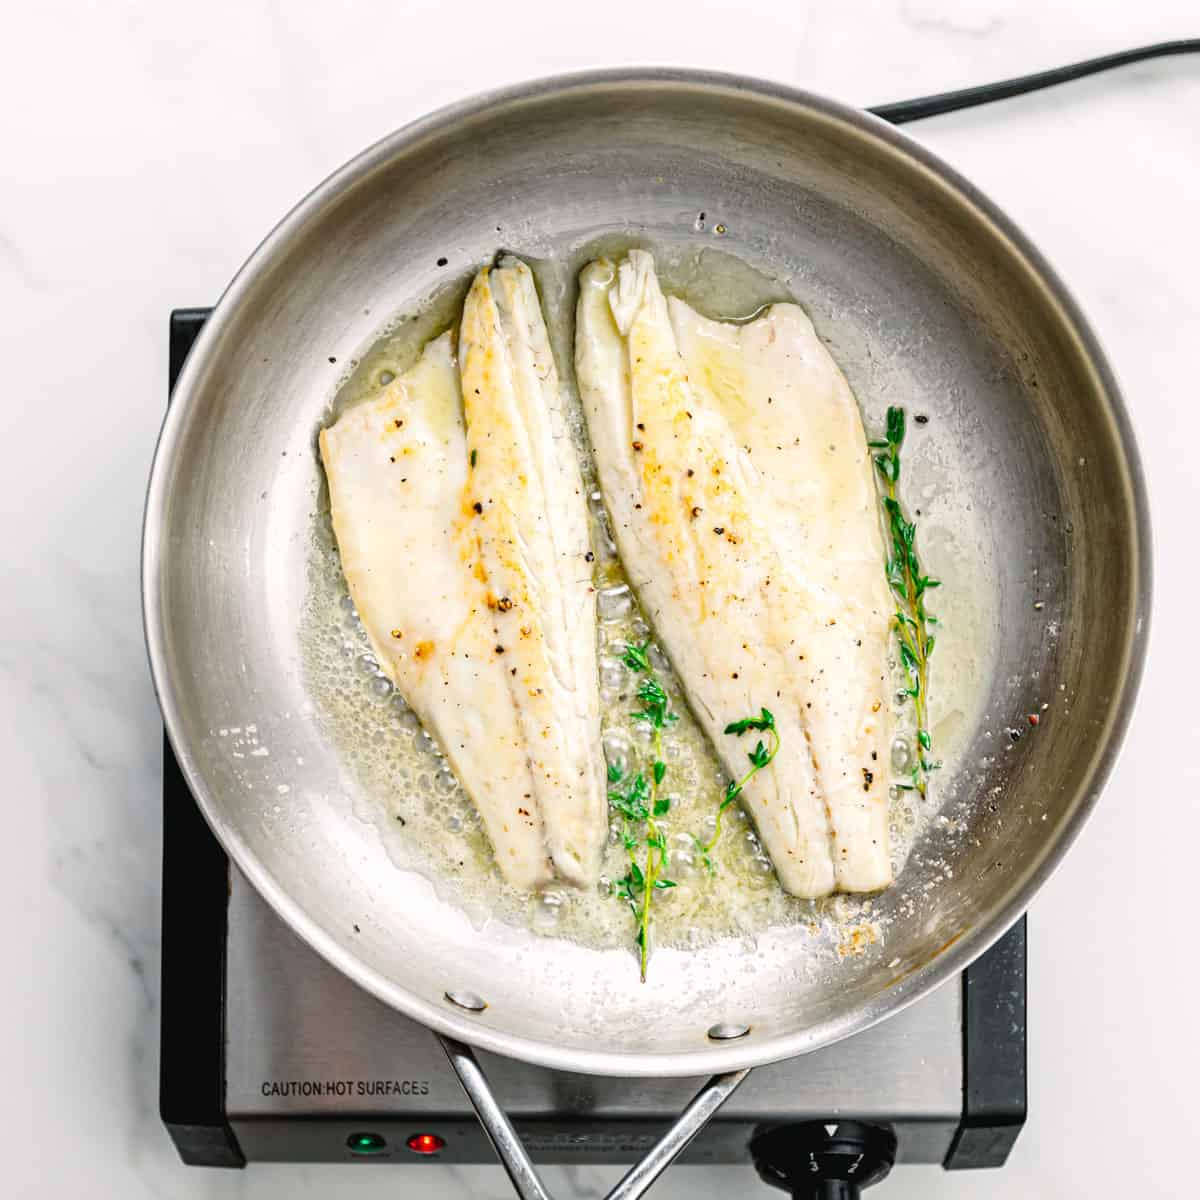 cooking fish fillets.